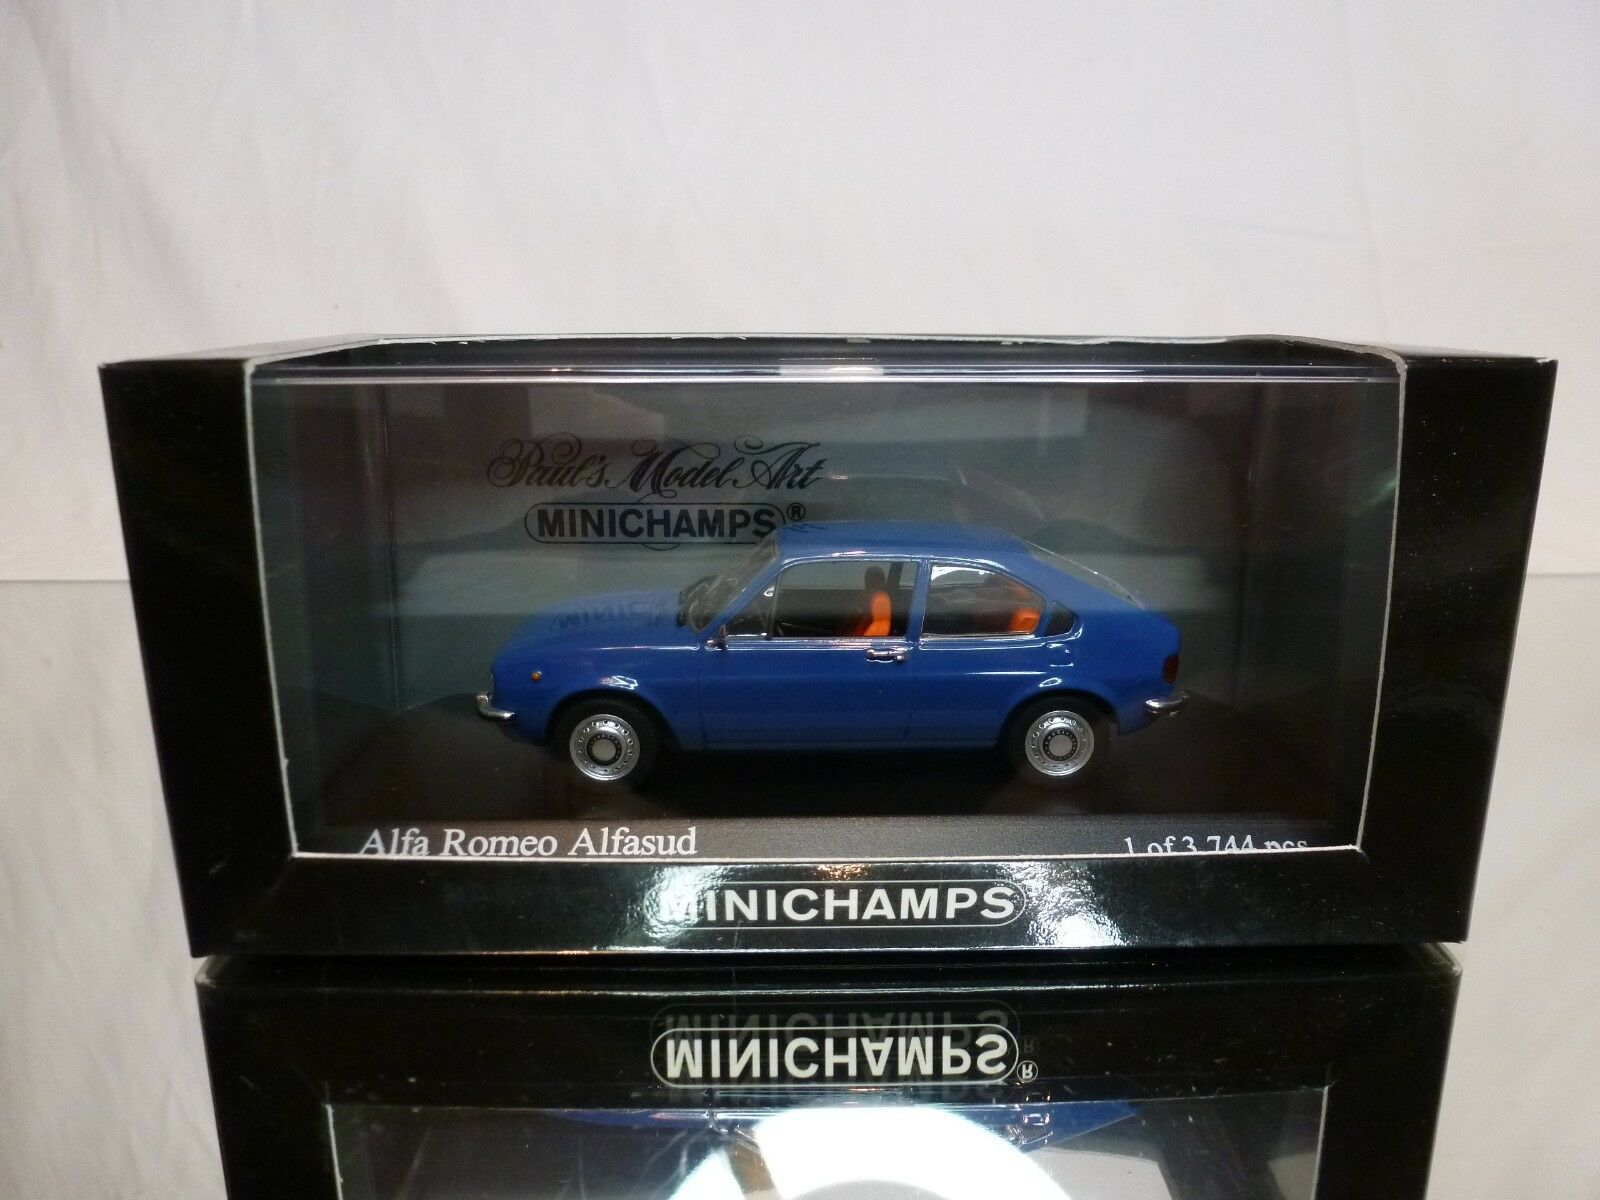 MINICHAMPS 120100 ALFA ROMEO ALFASUD 1972 - bleu 1 43 - EXCELLENT IN BOX